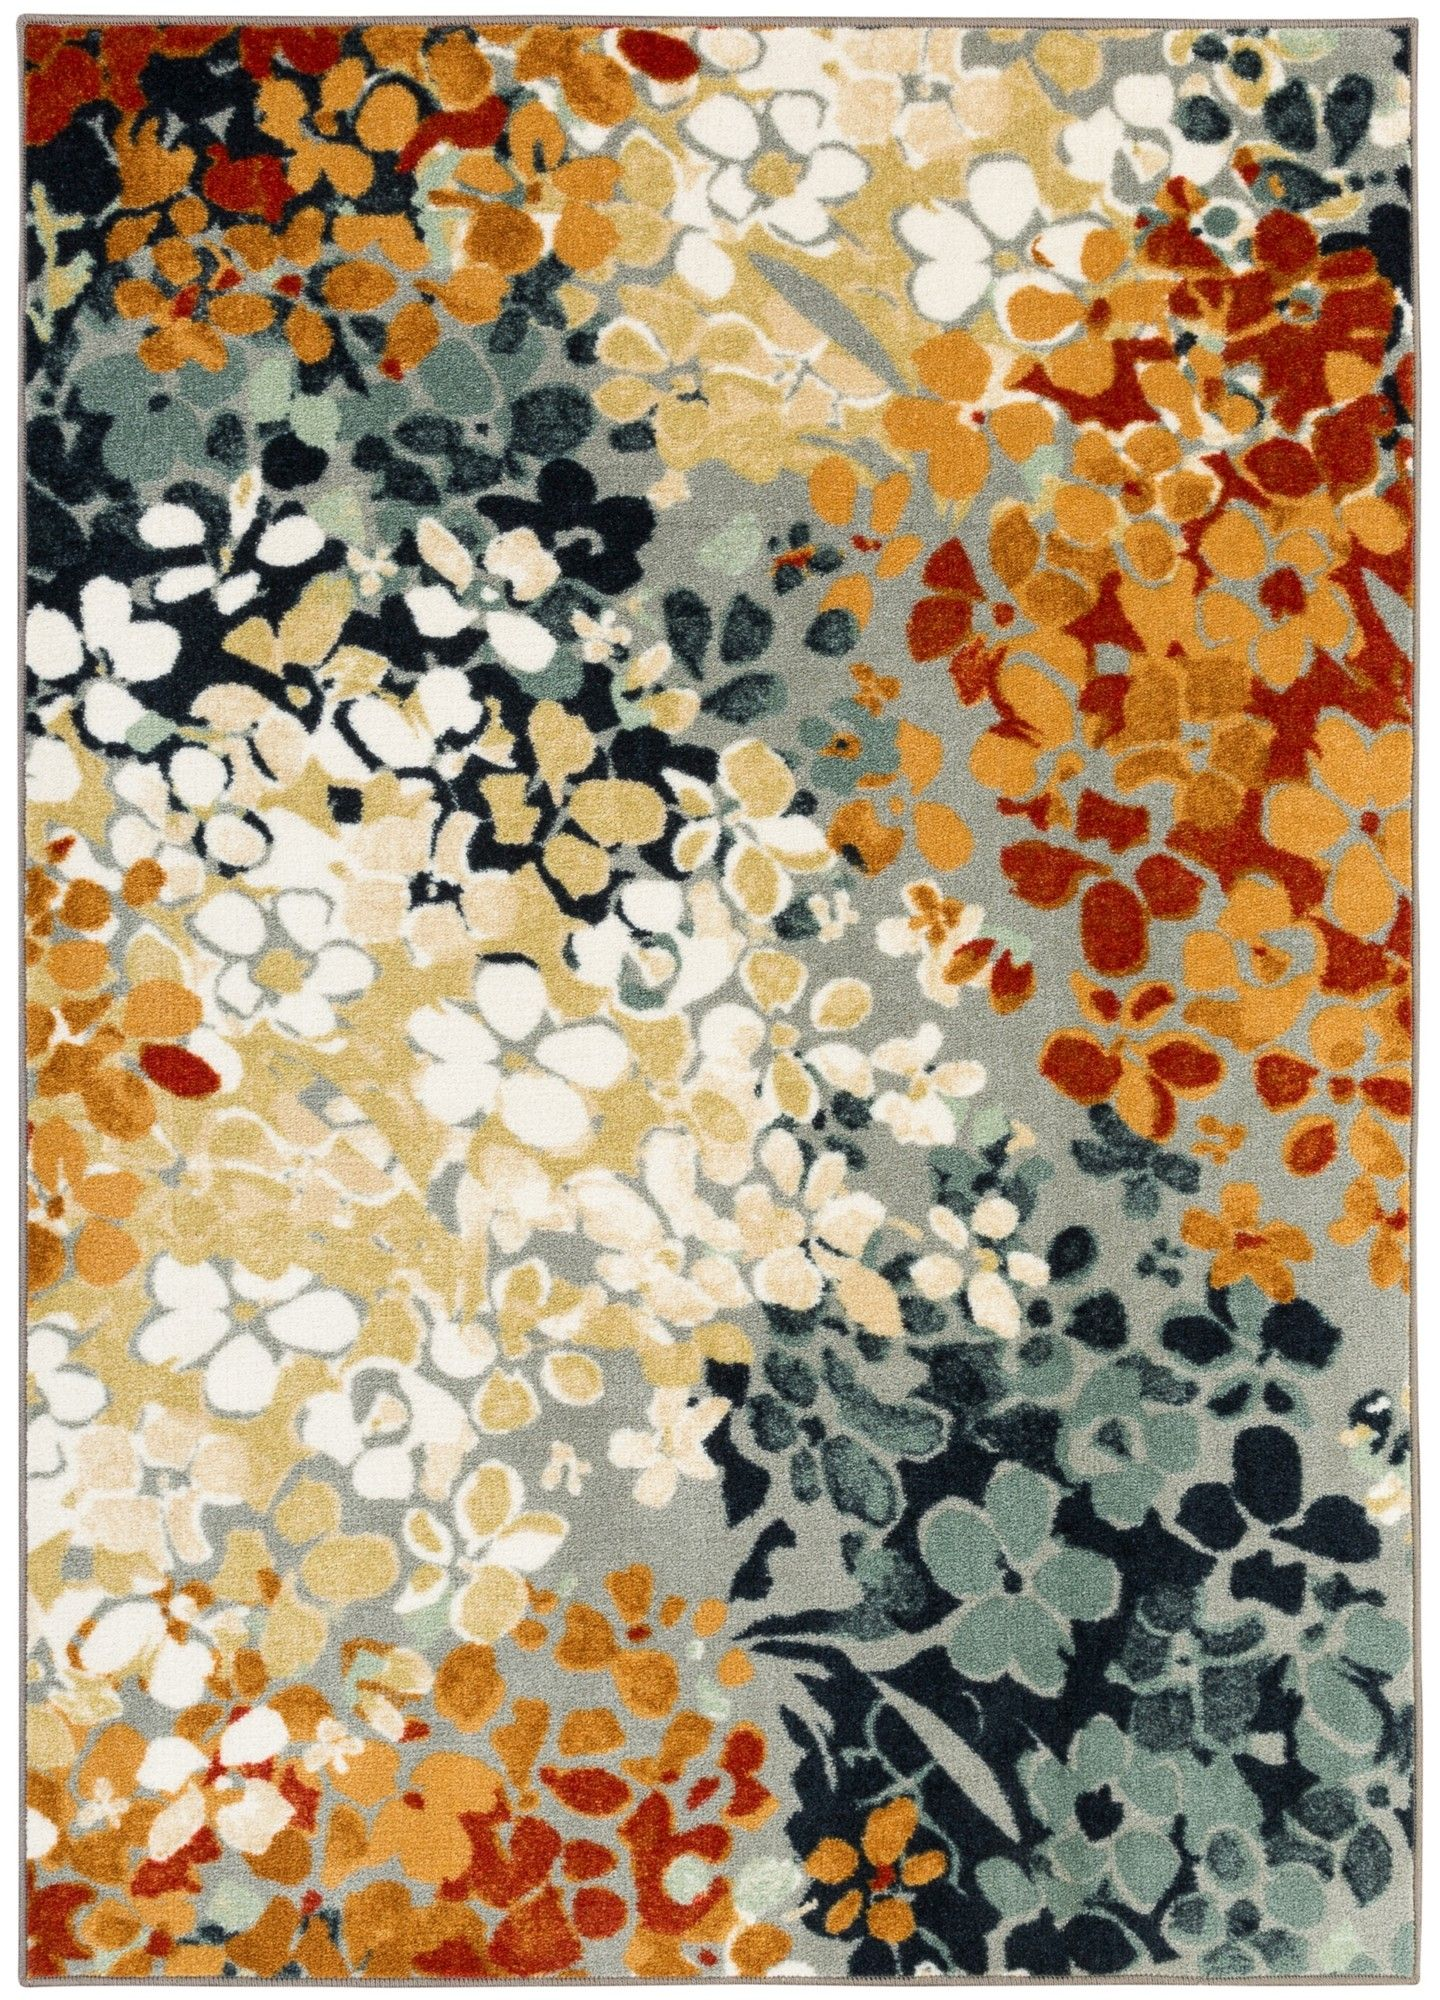 Barton radiance printed area rug products